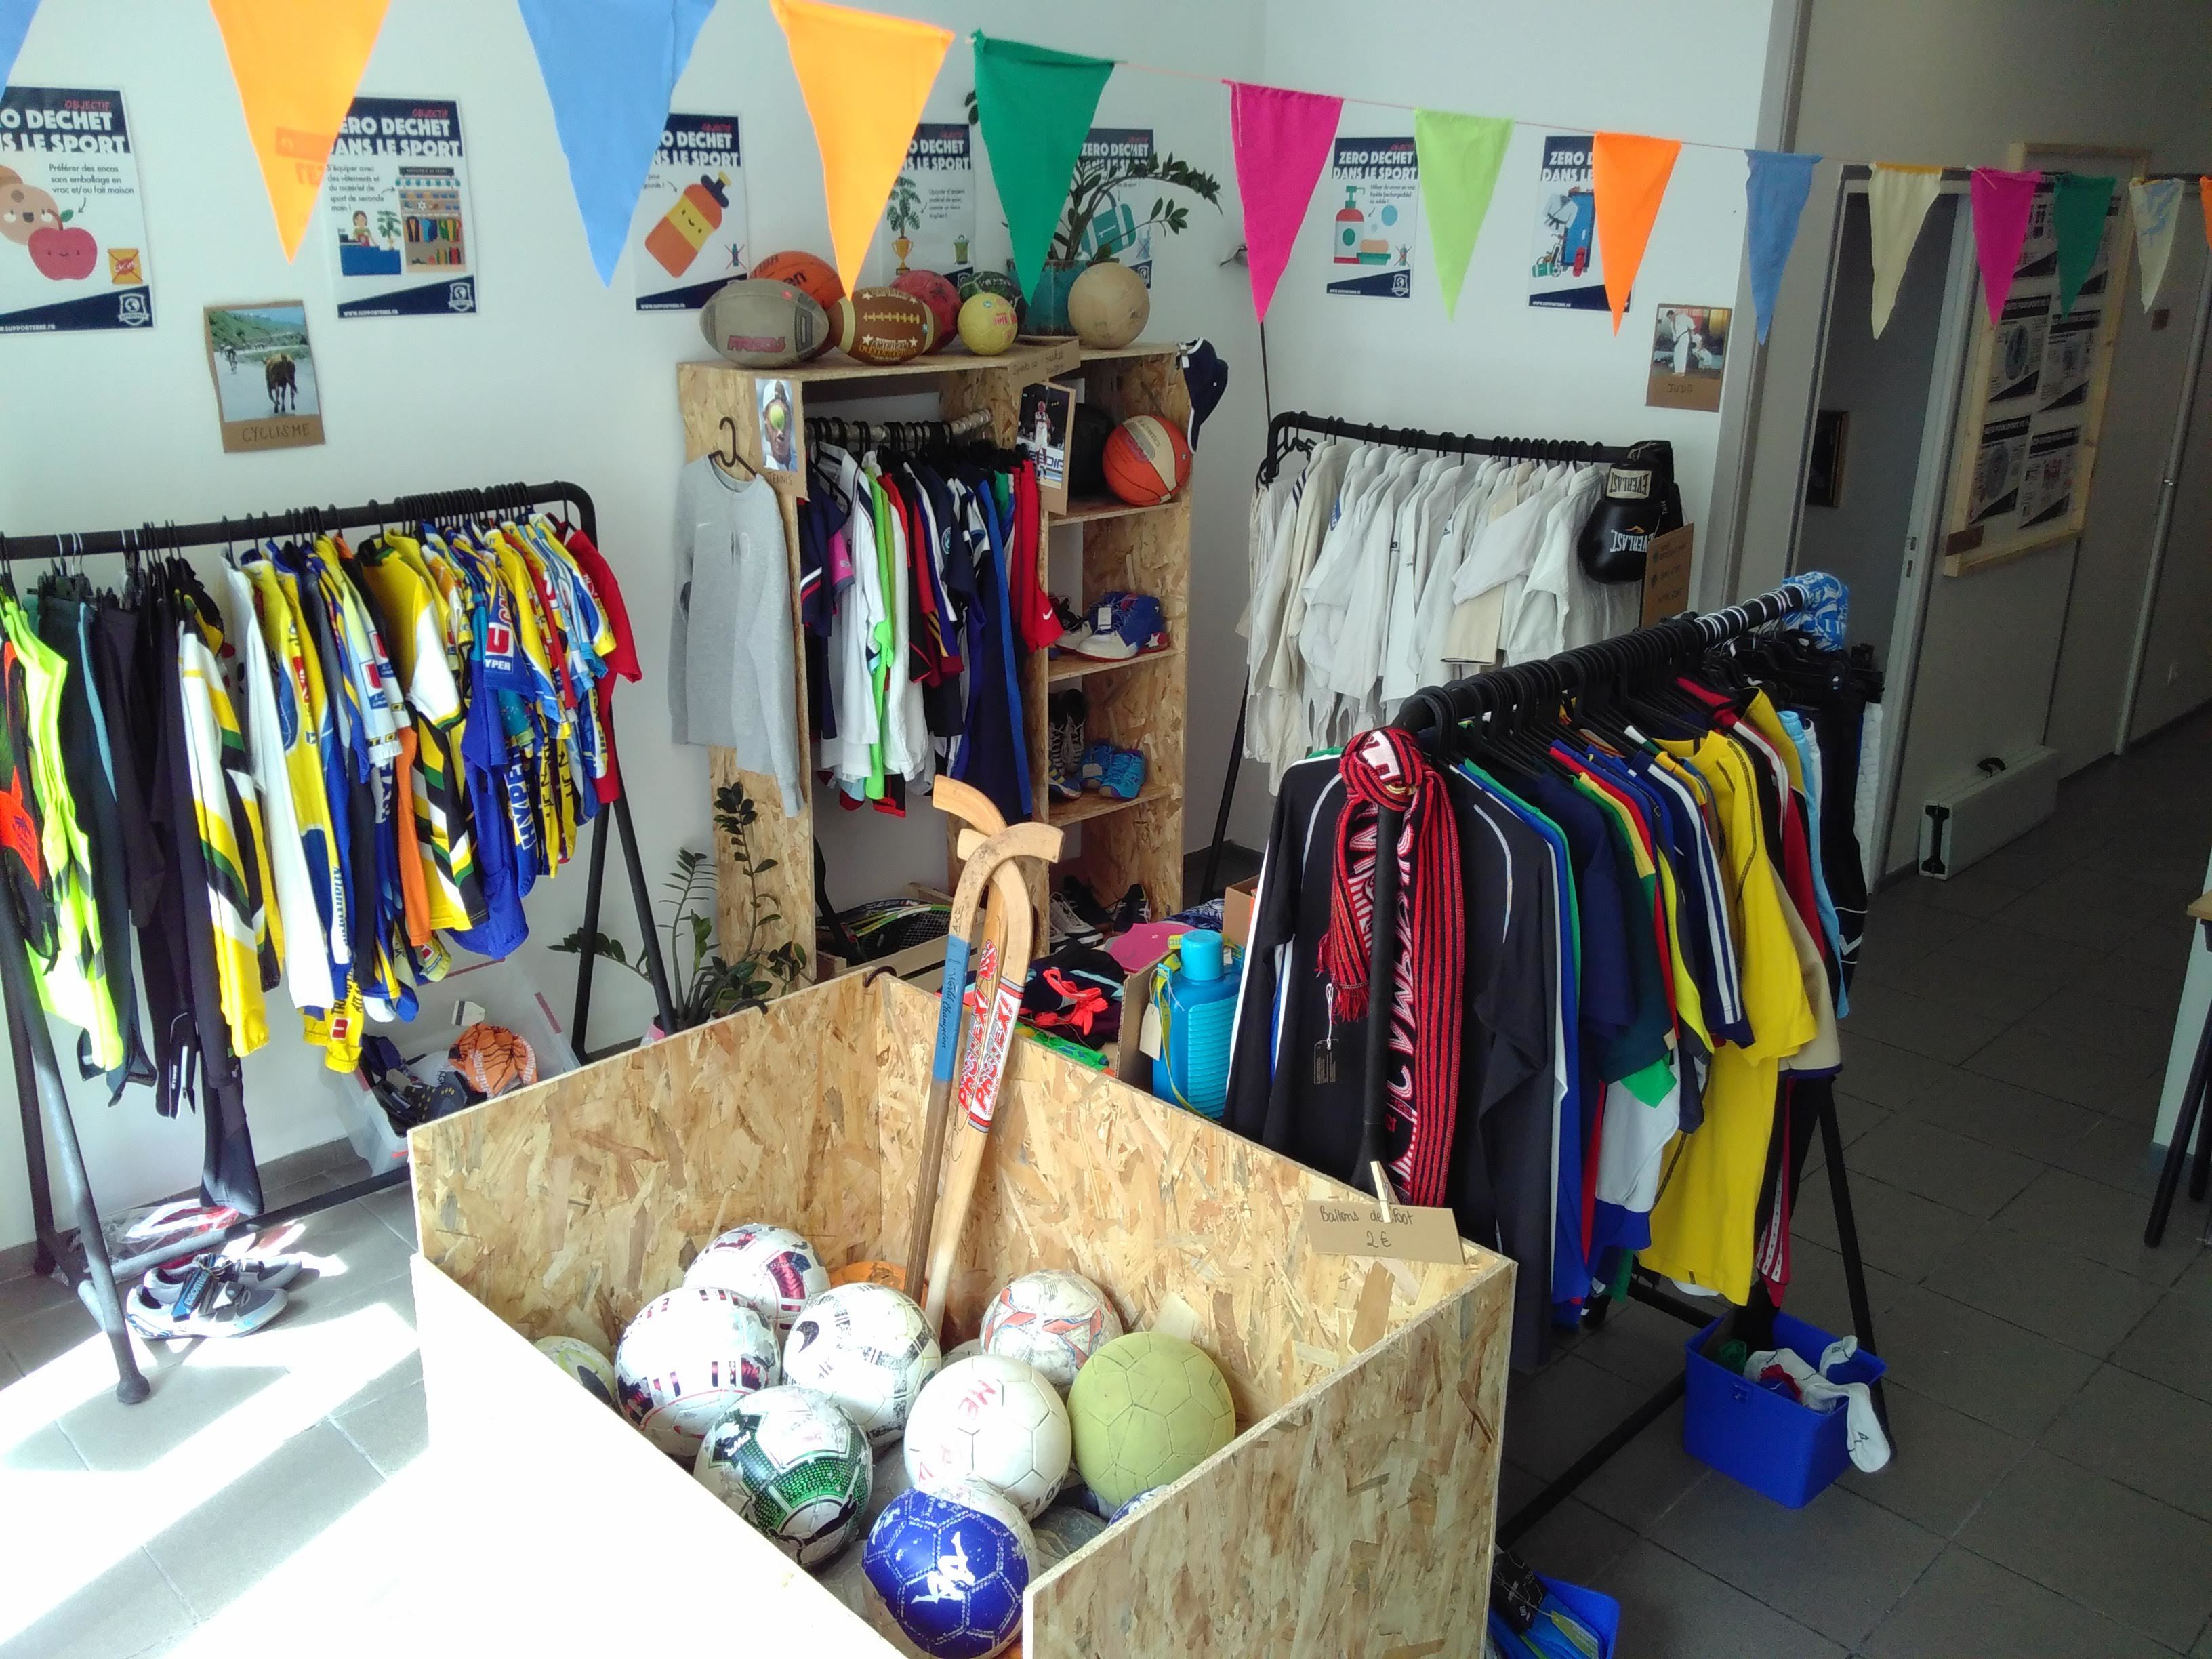 Galerie d'image - Recyclerie du sport - SupporTerre